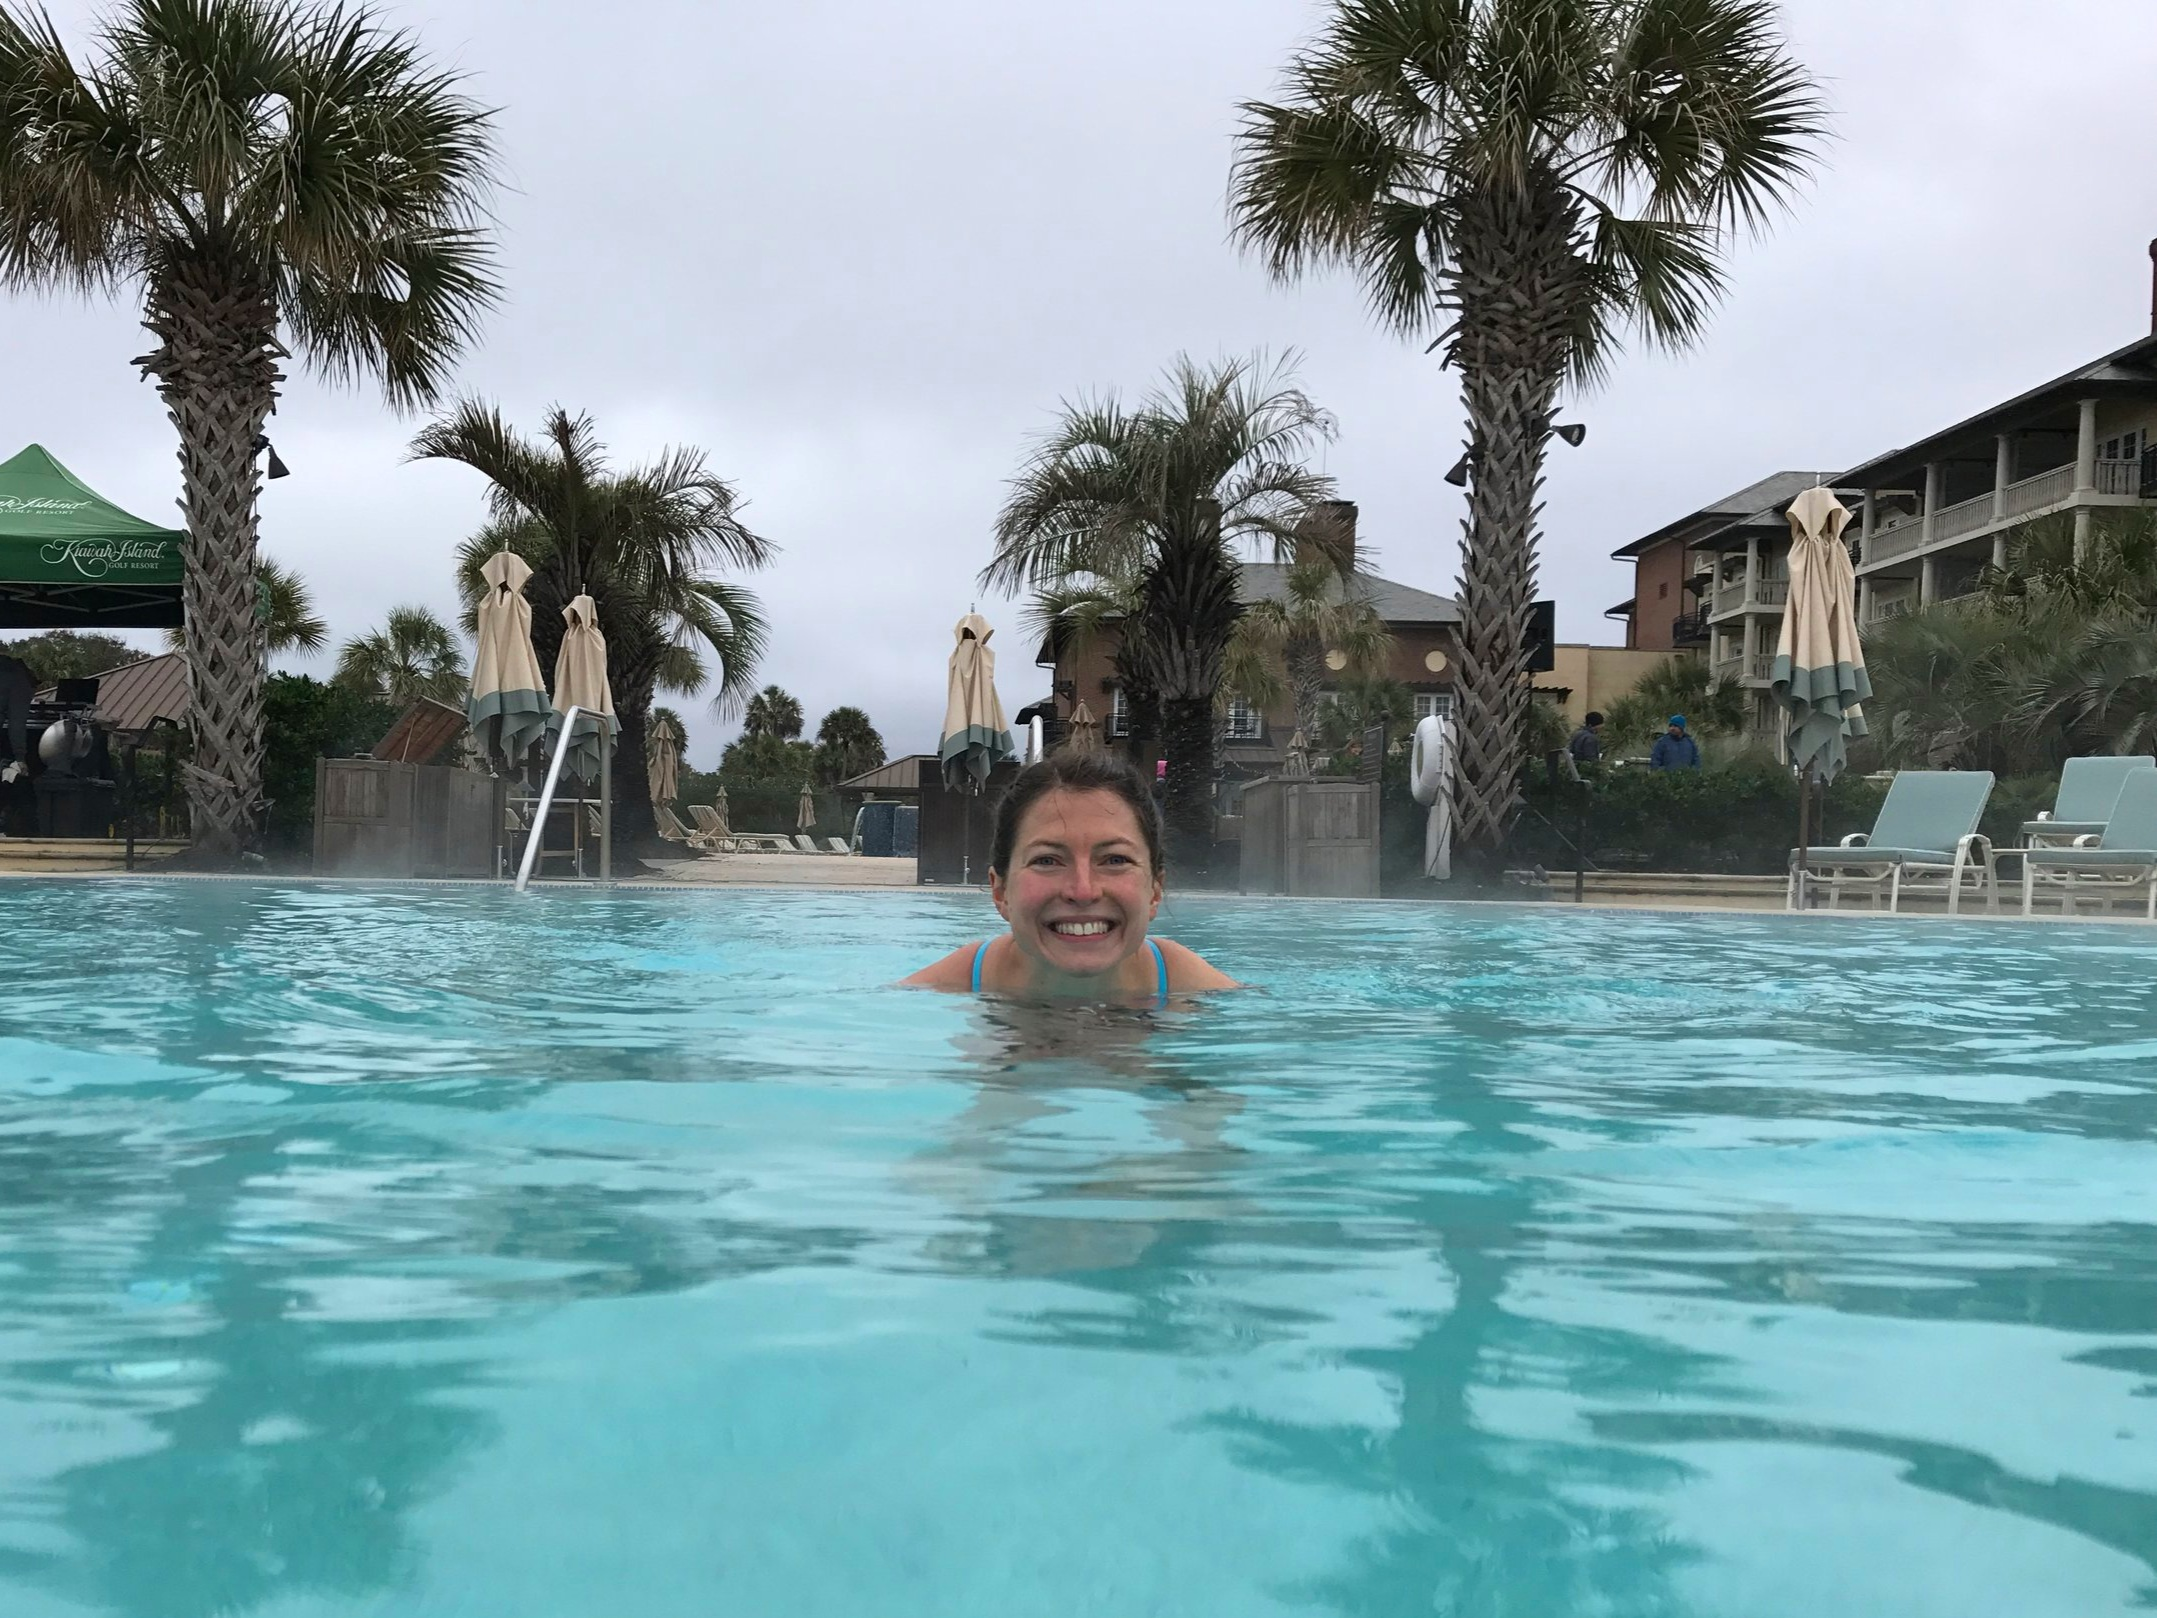 After winning the 2017 Kiawah Island Marathon in 2:52, I was THE only person brave enough to go in the very very cold unheated outdoor pool in December! It was an awesome ice bath!